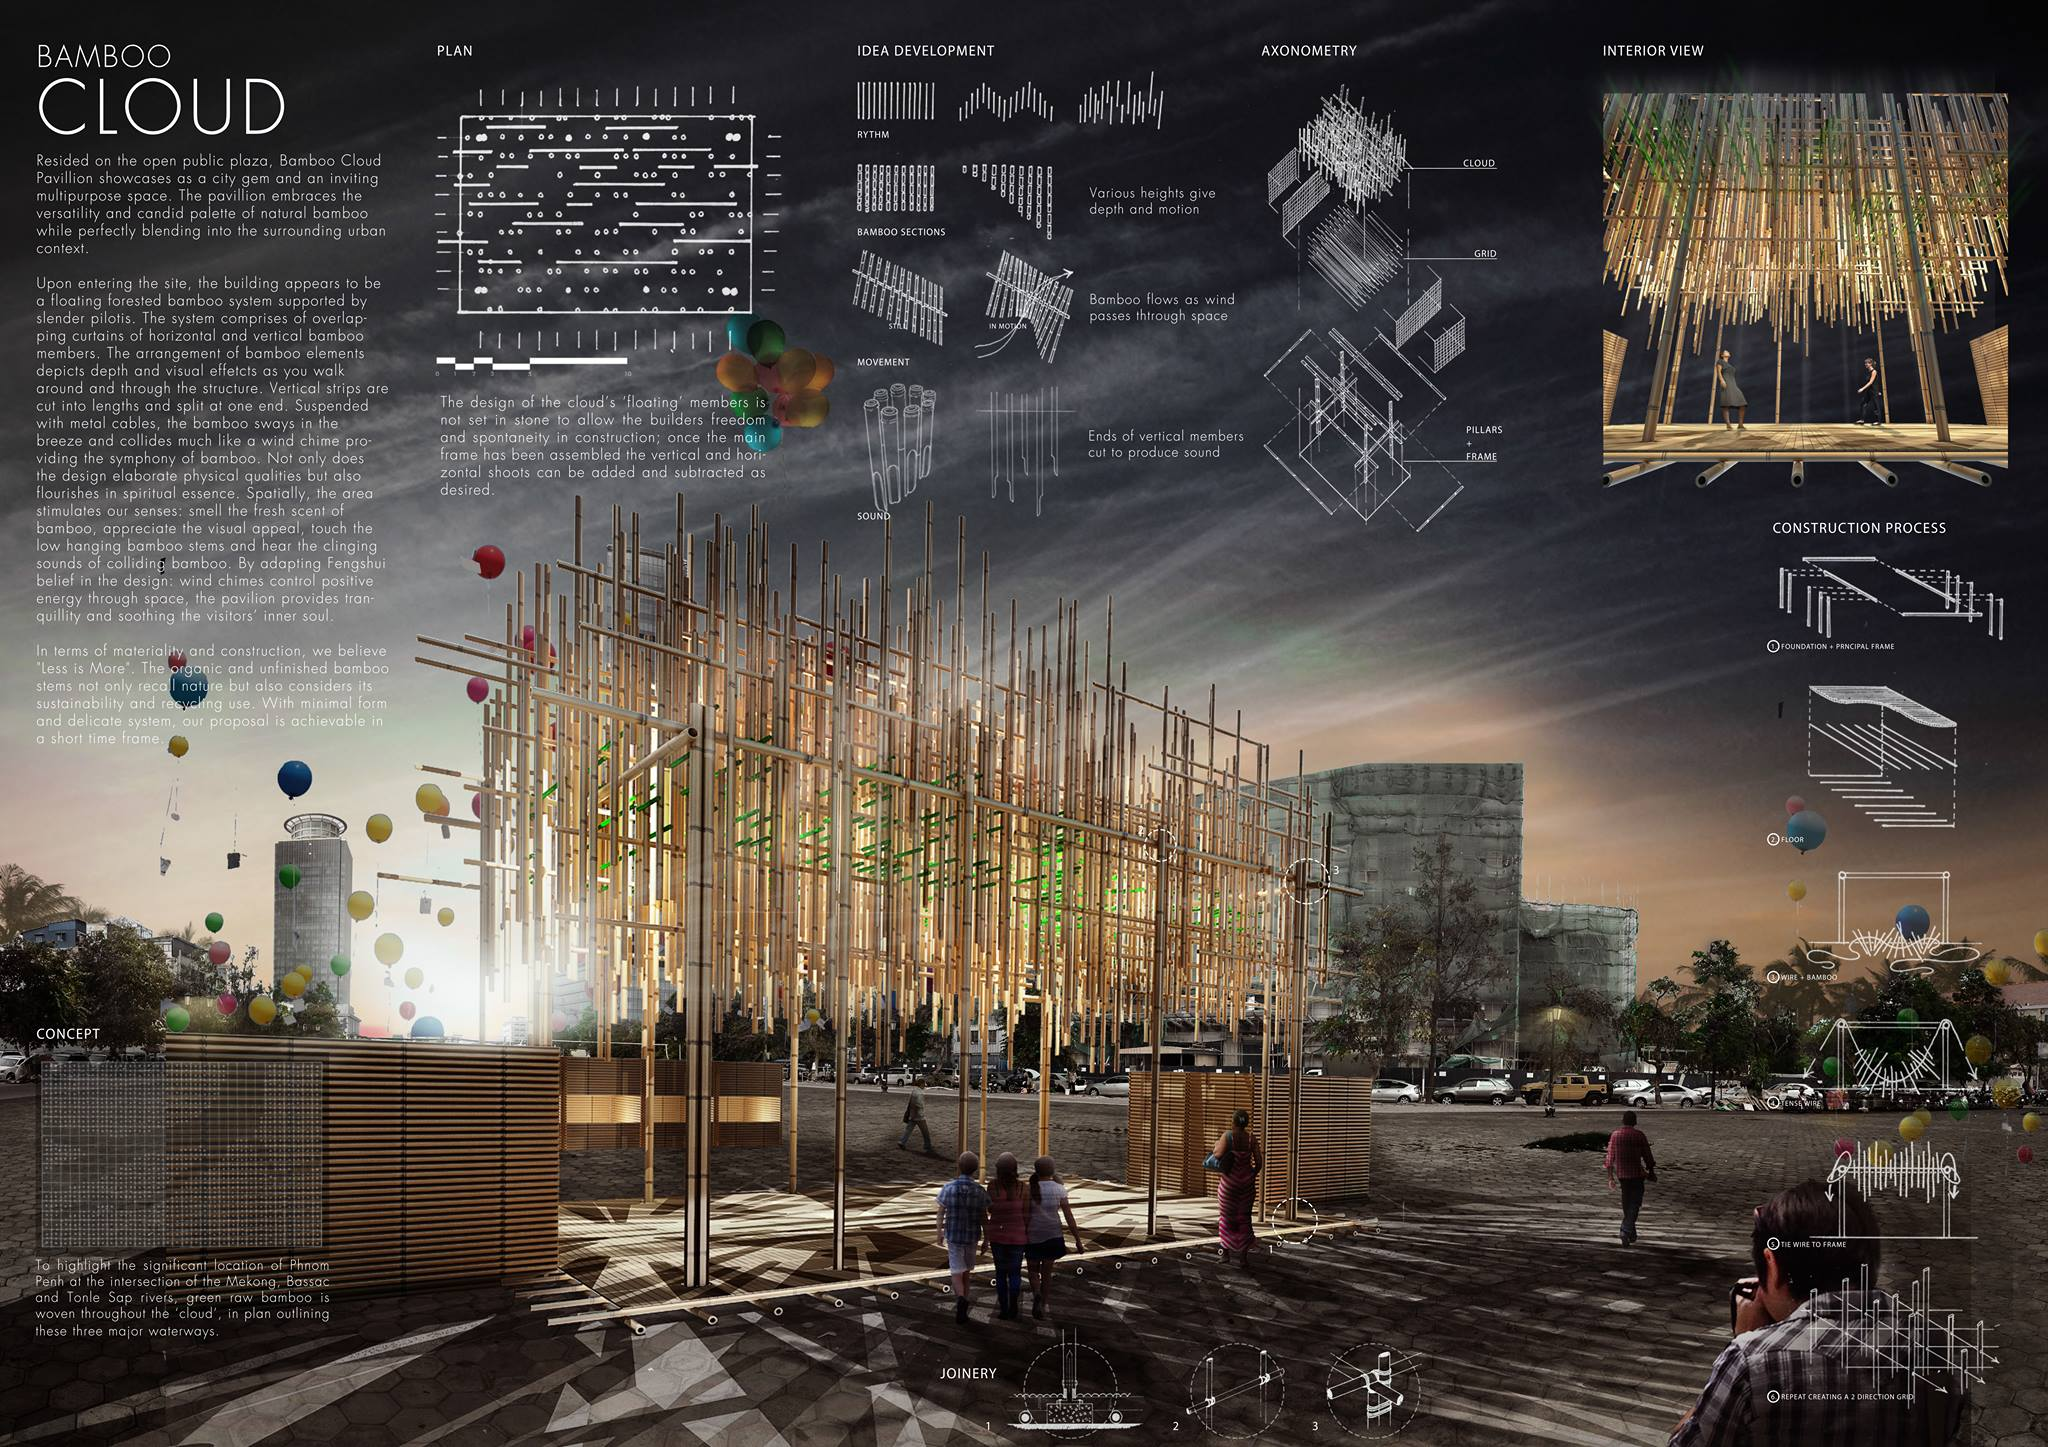 HONORABLE MENTION: 'BAMBOO CLOUD'by Juan Sebastian Larotta, Nguyen Le Thao Nguyen and Niwili White Forrest from  UNSW (University of New South Wales, Sydney, Australia)